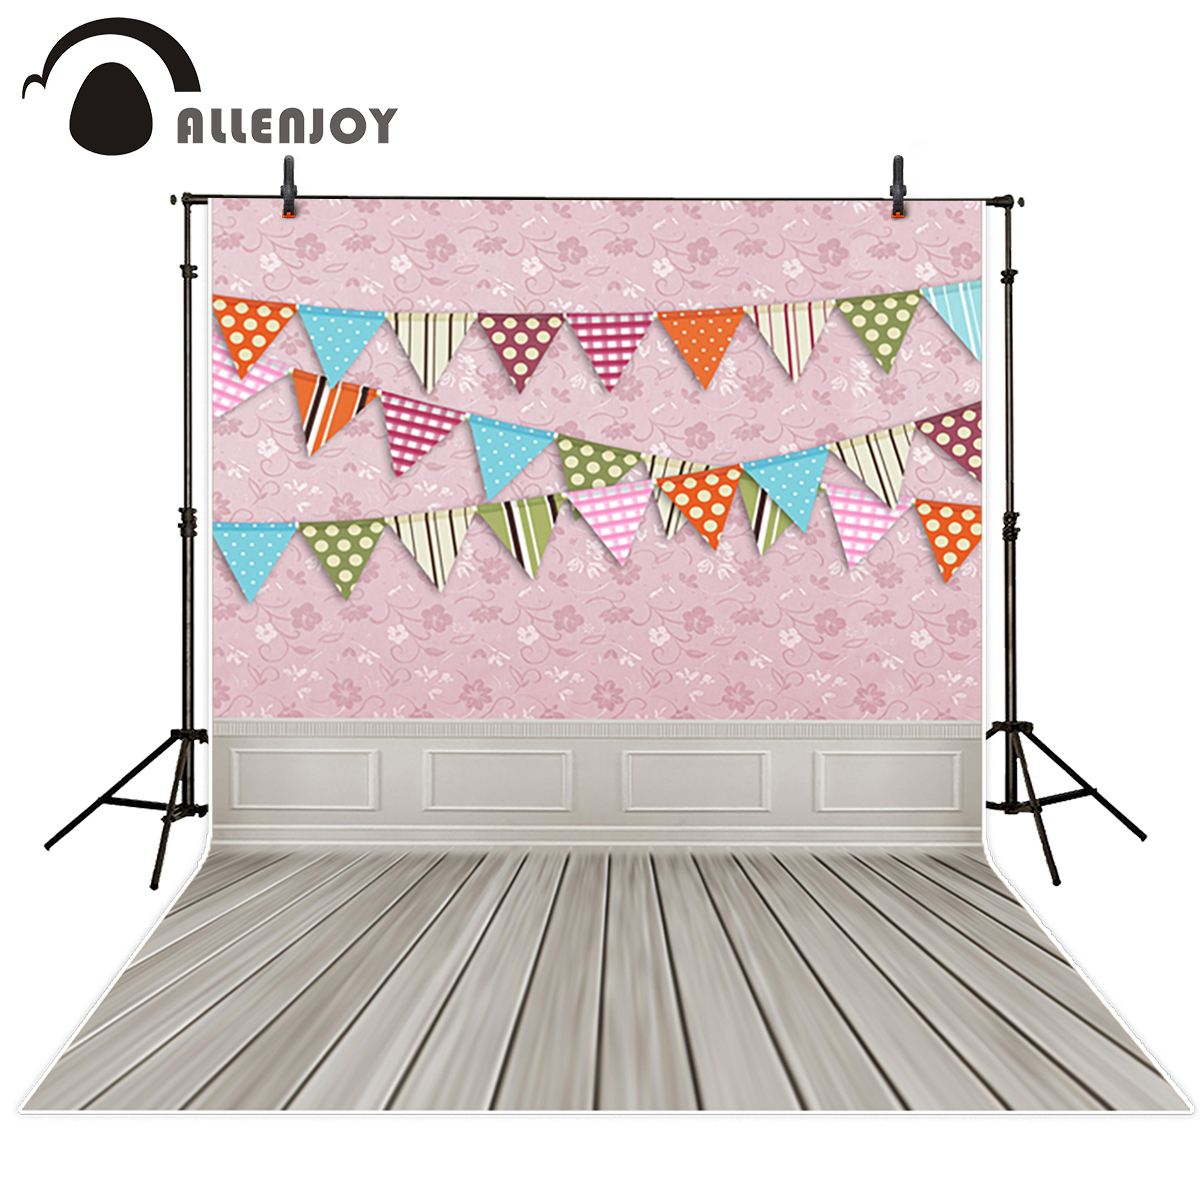 Allenjoy photography Store Allenjoy photography background pink flower wall colorful flags backdrops newborn kids photo photocall customize